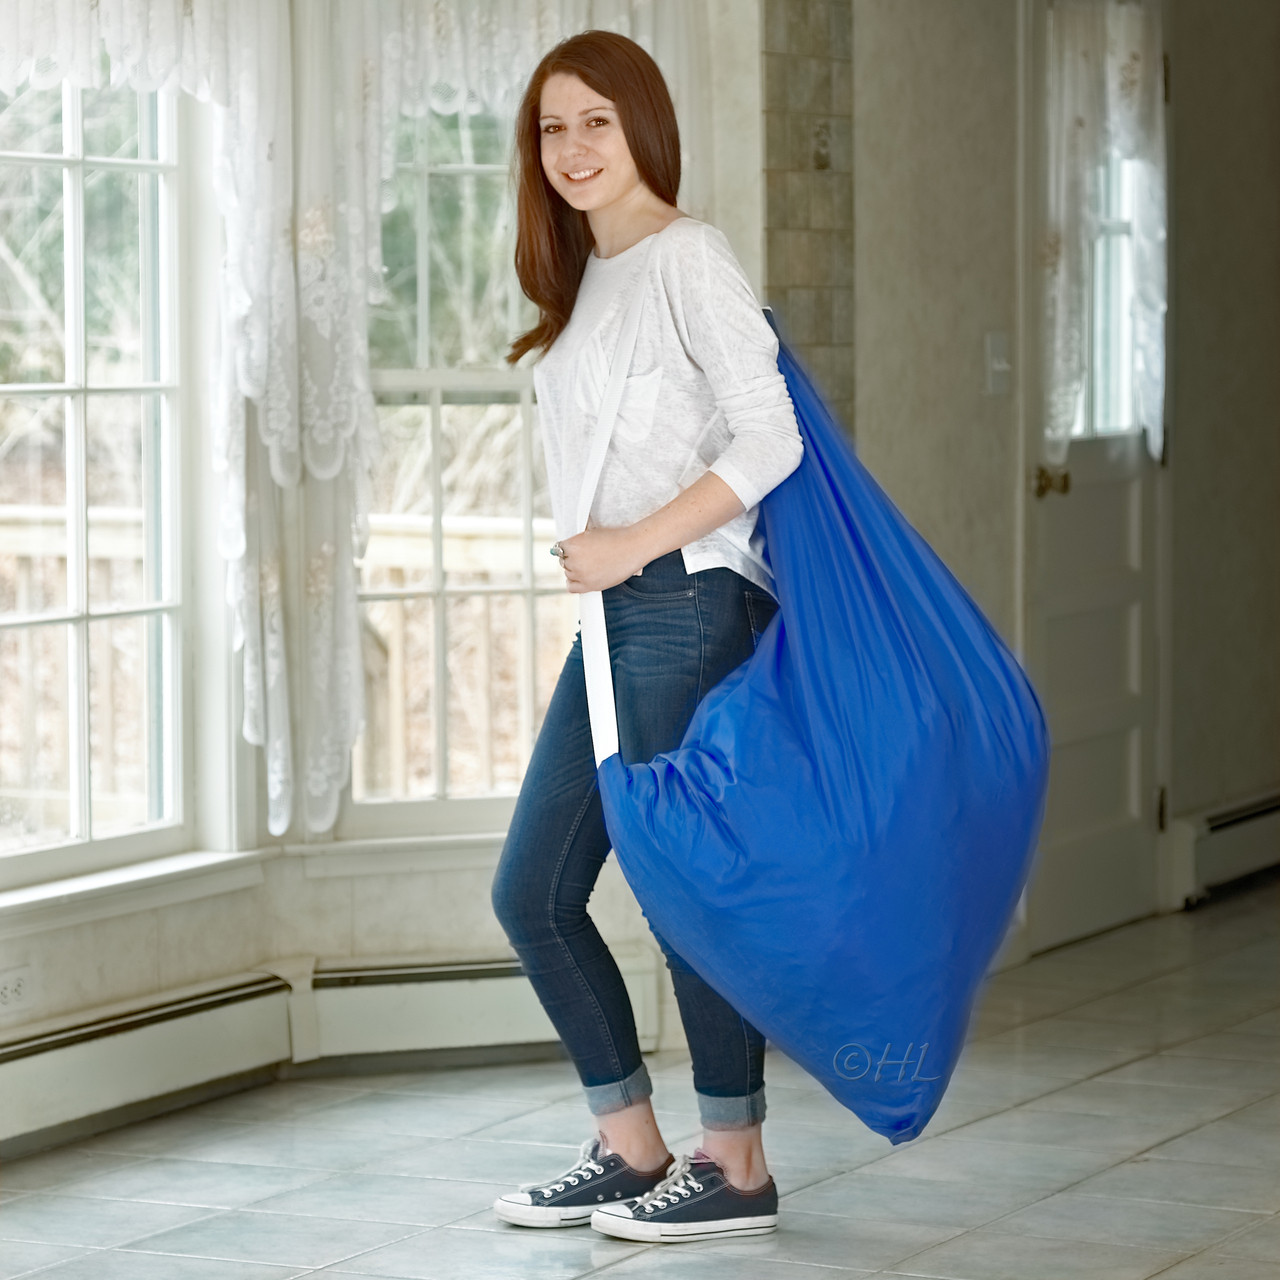 ee14f77023b88 Nylon Laundry Bag with Shoulder Strap